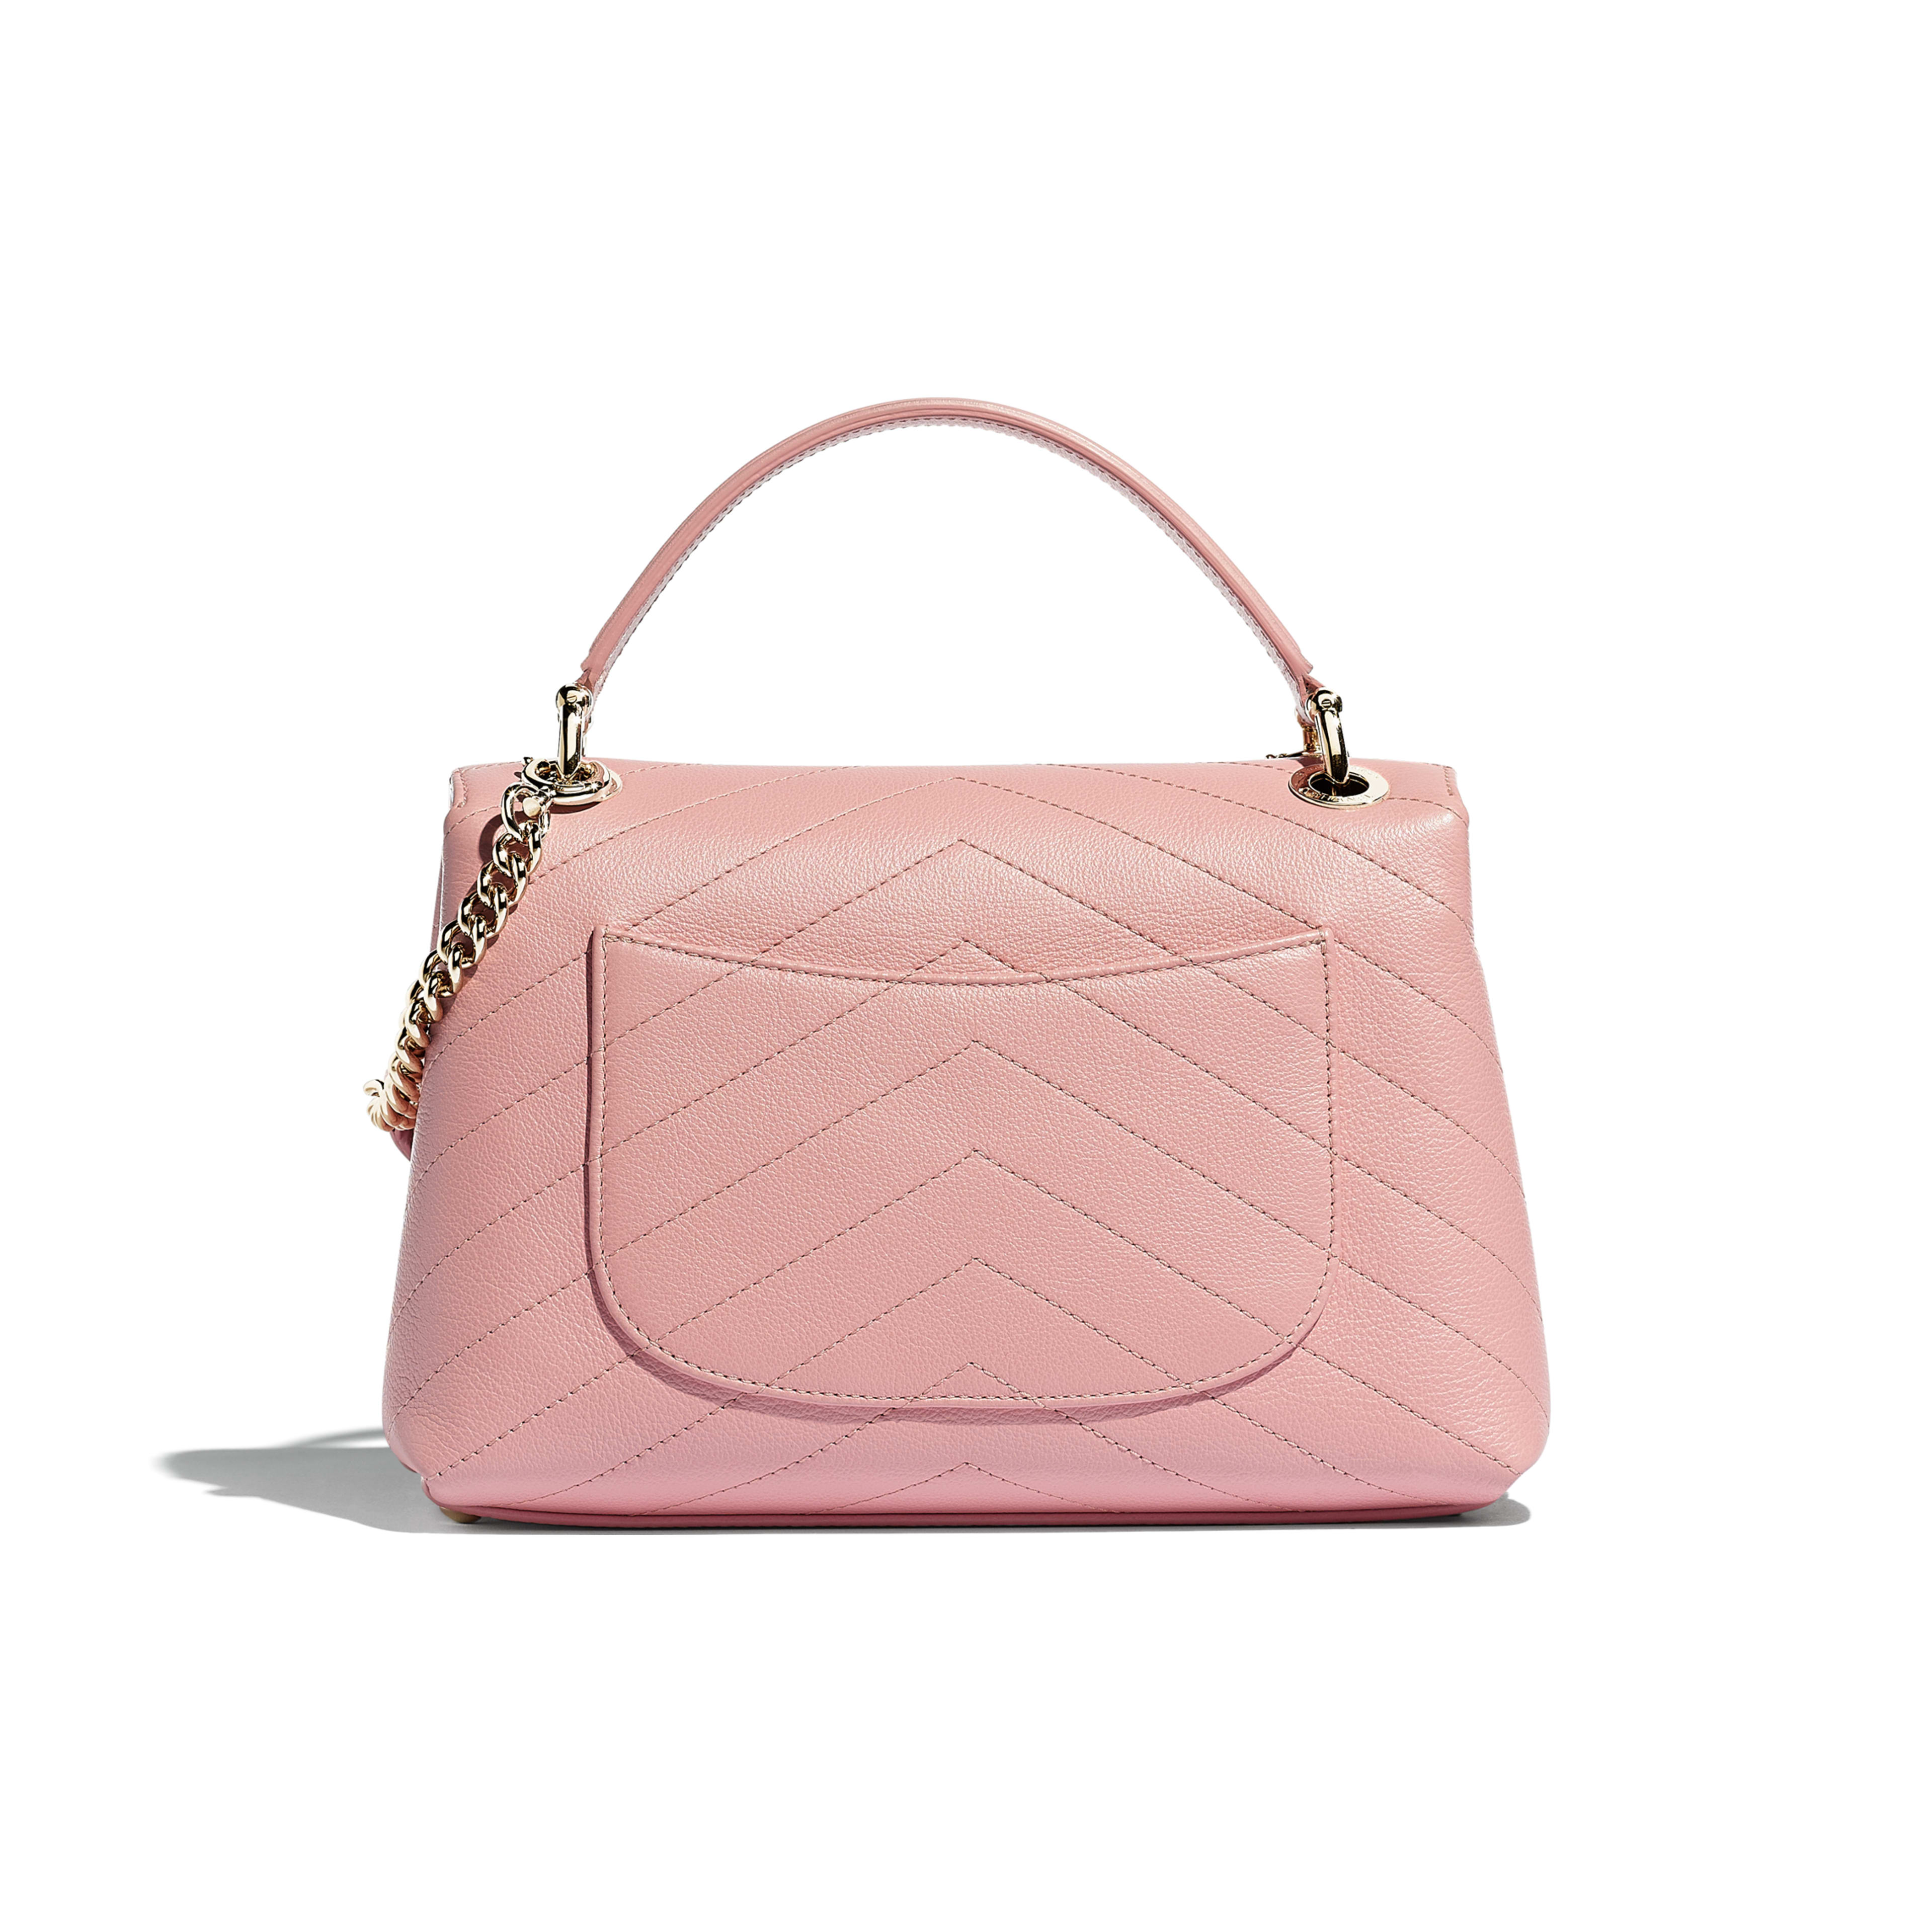 Small Flap Bag with Top Handle - Pink - Grained Calfskin & Gold-Tone Metal - Alternative view - see full sized version